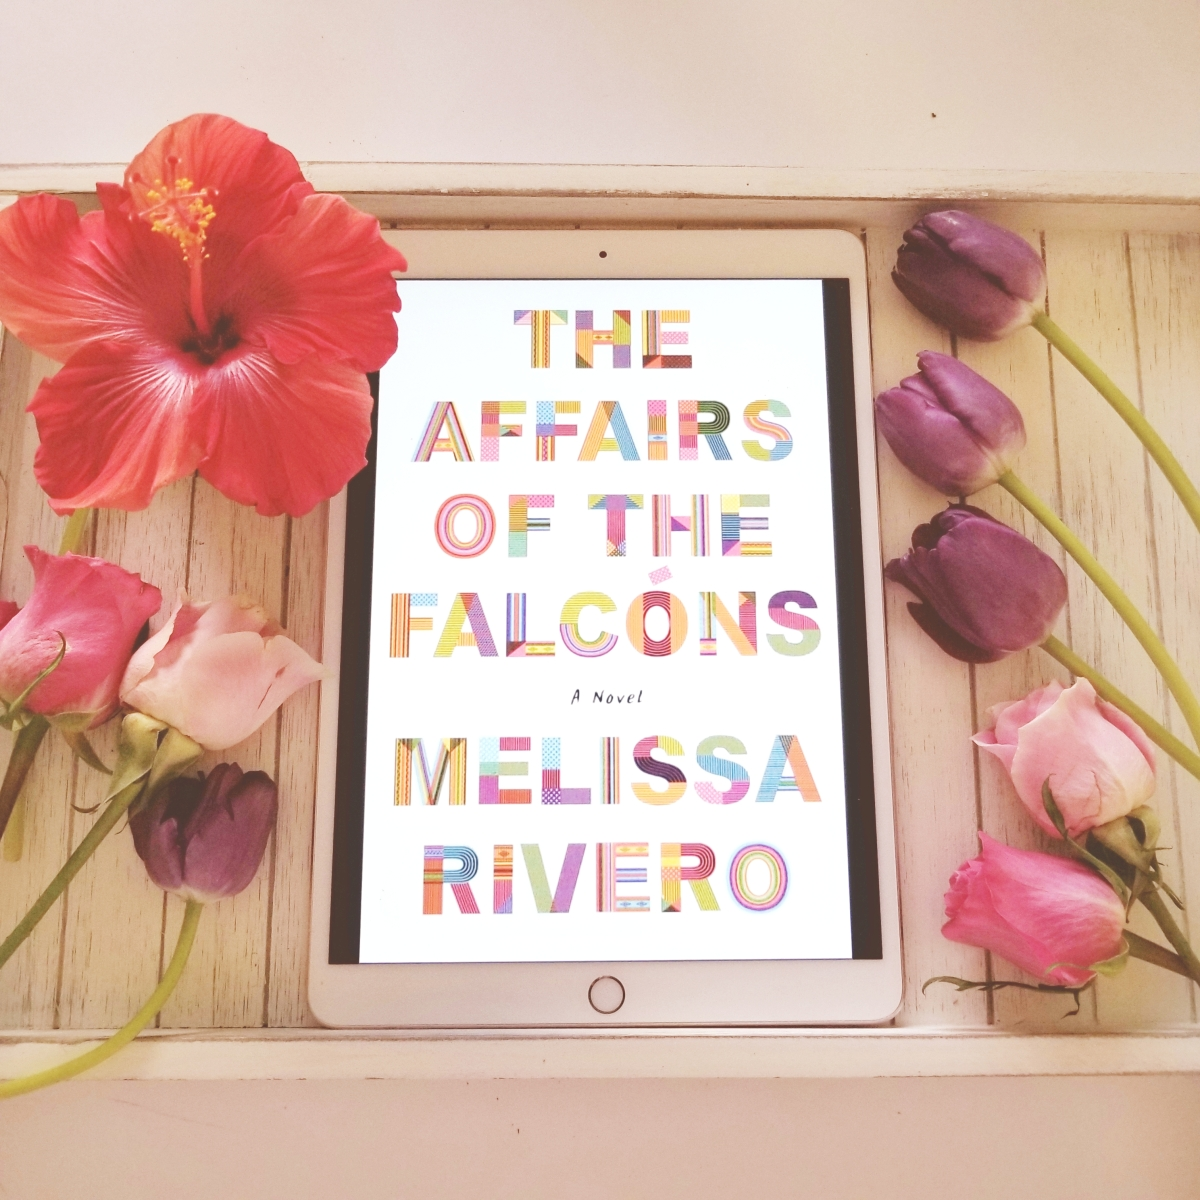 The Affairs of the Falcons by Melissa Rivero #bookreview #tarheelreader #thrthefalcons @melissa_rivero @eccobooks #theaffairsofthefalcons